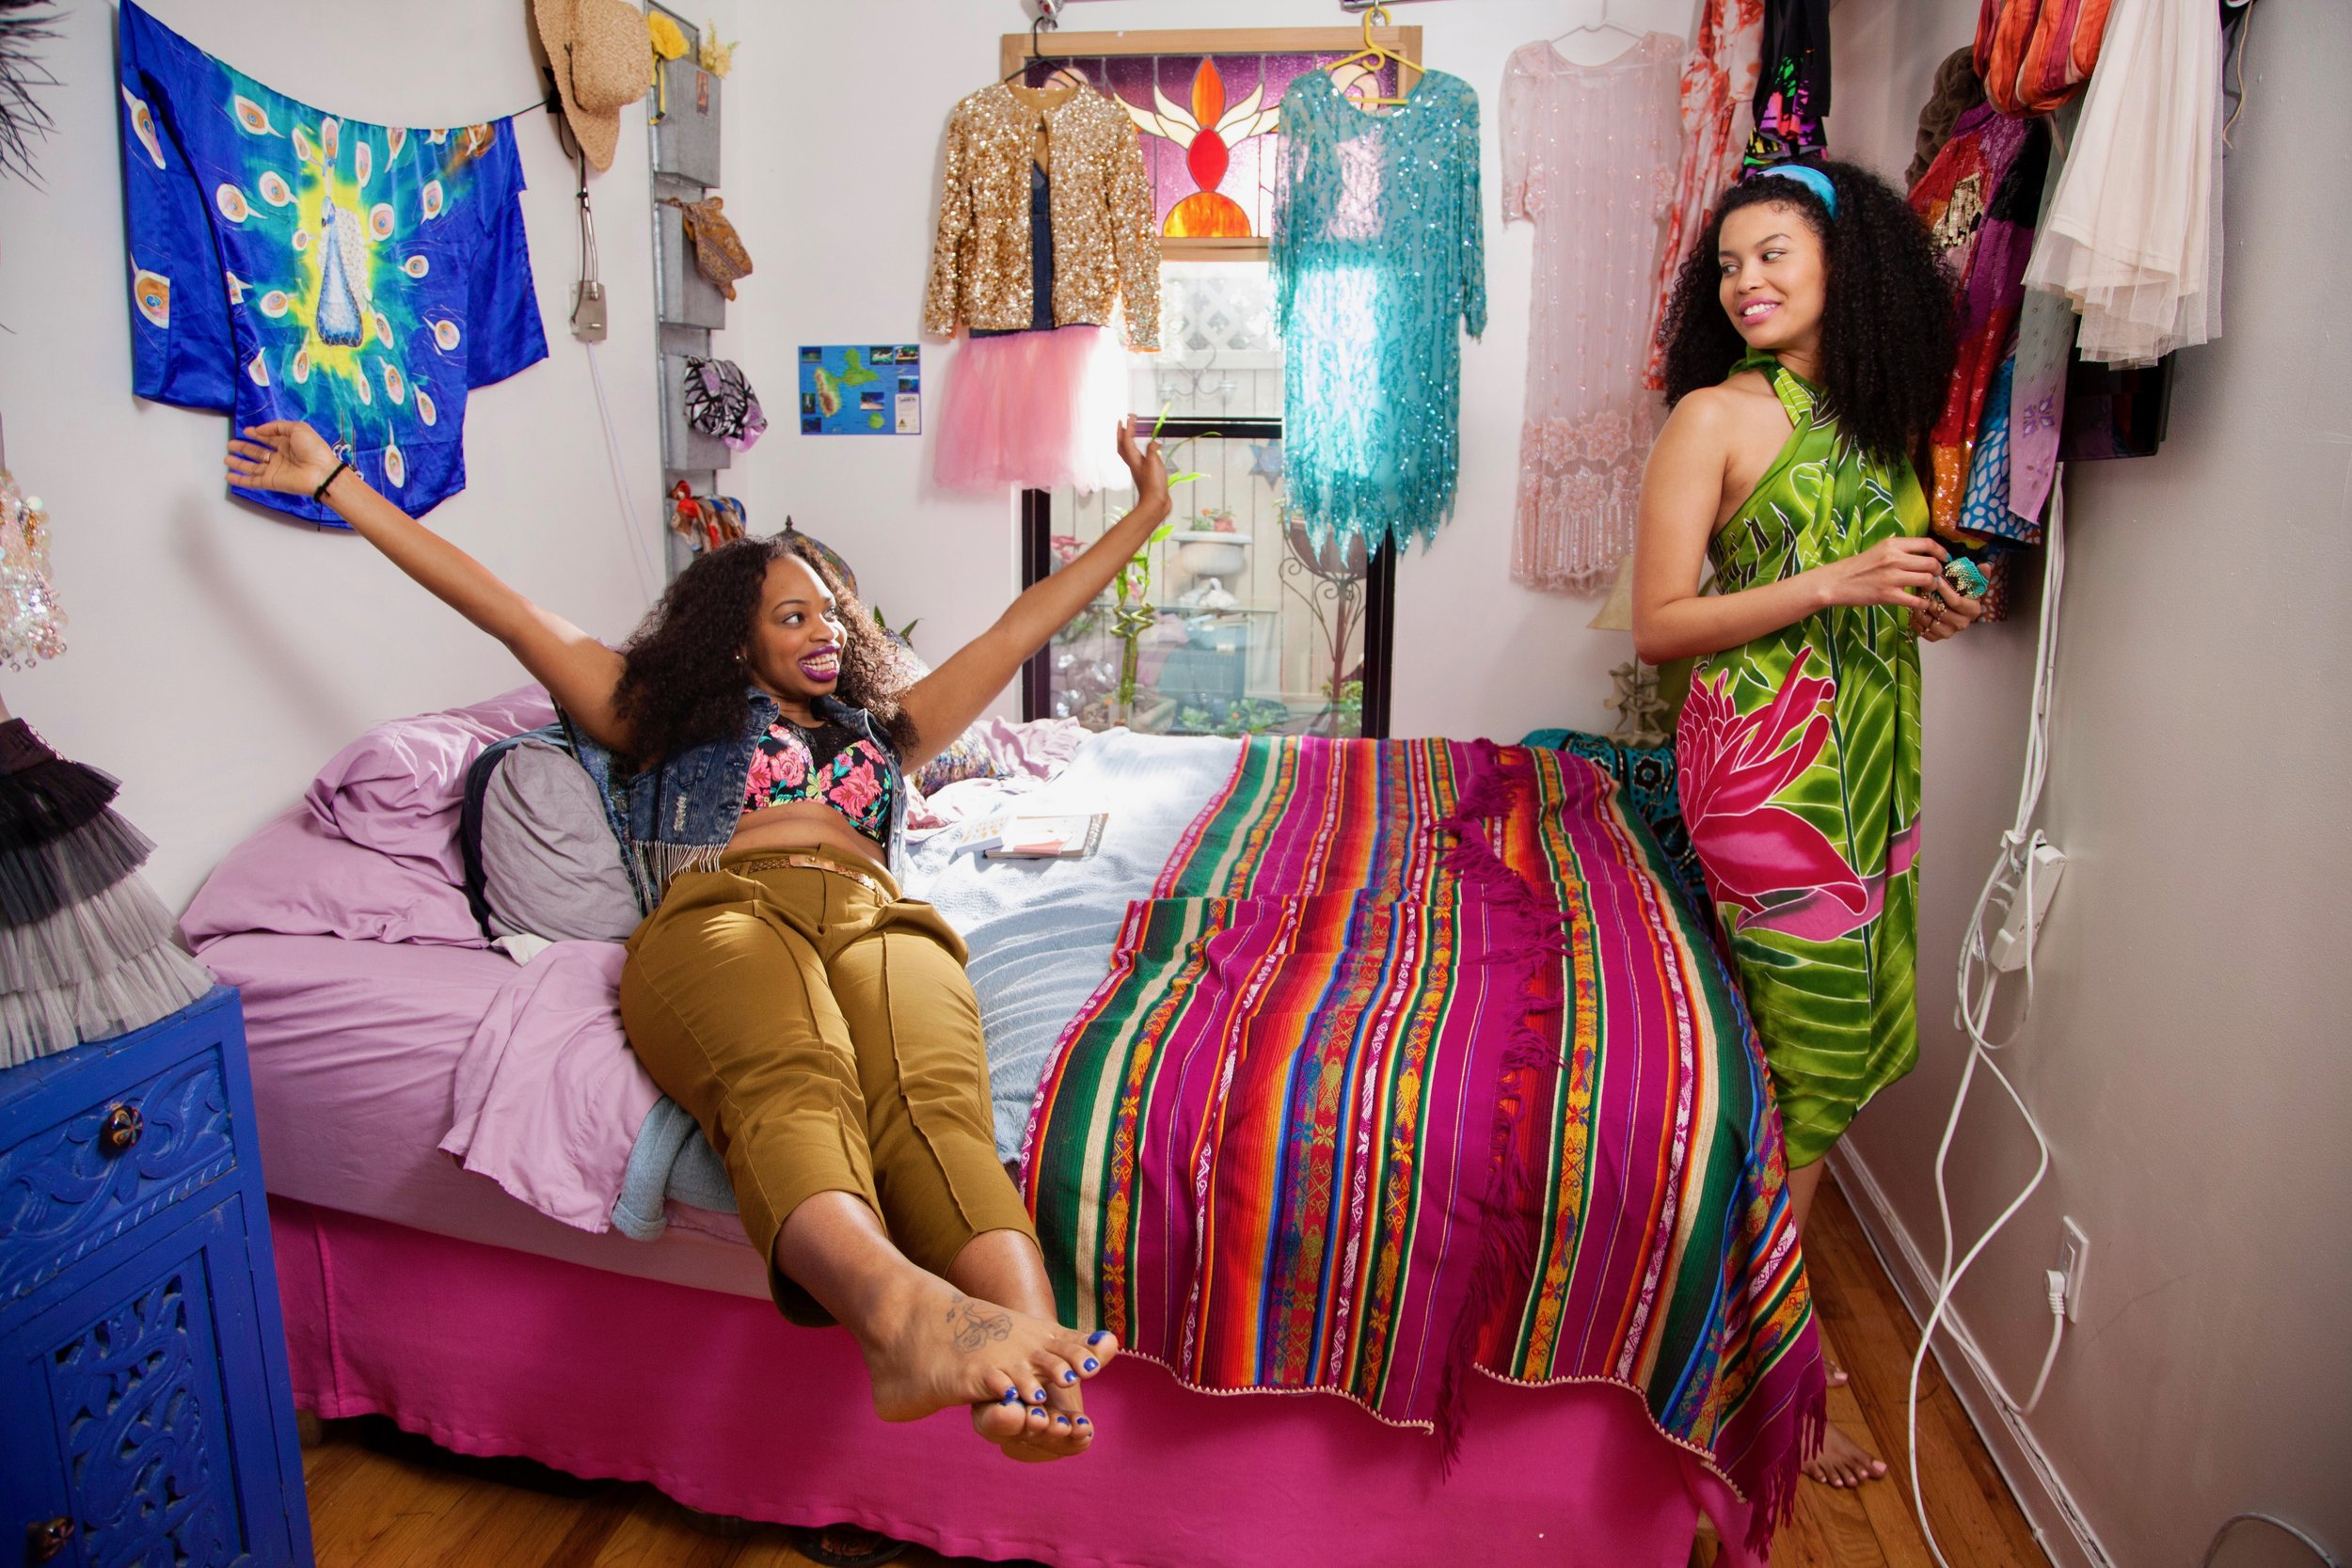 Tilly and Isabelle in bedroom.jpg